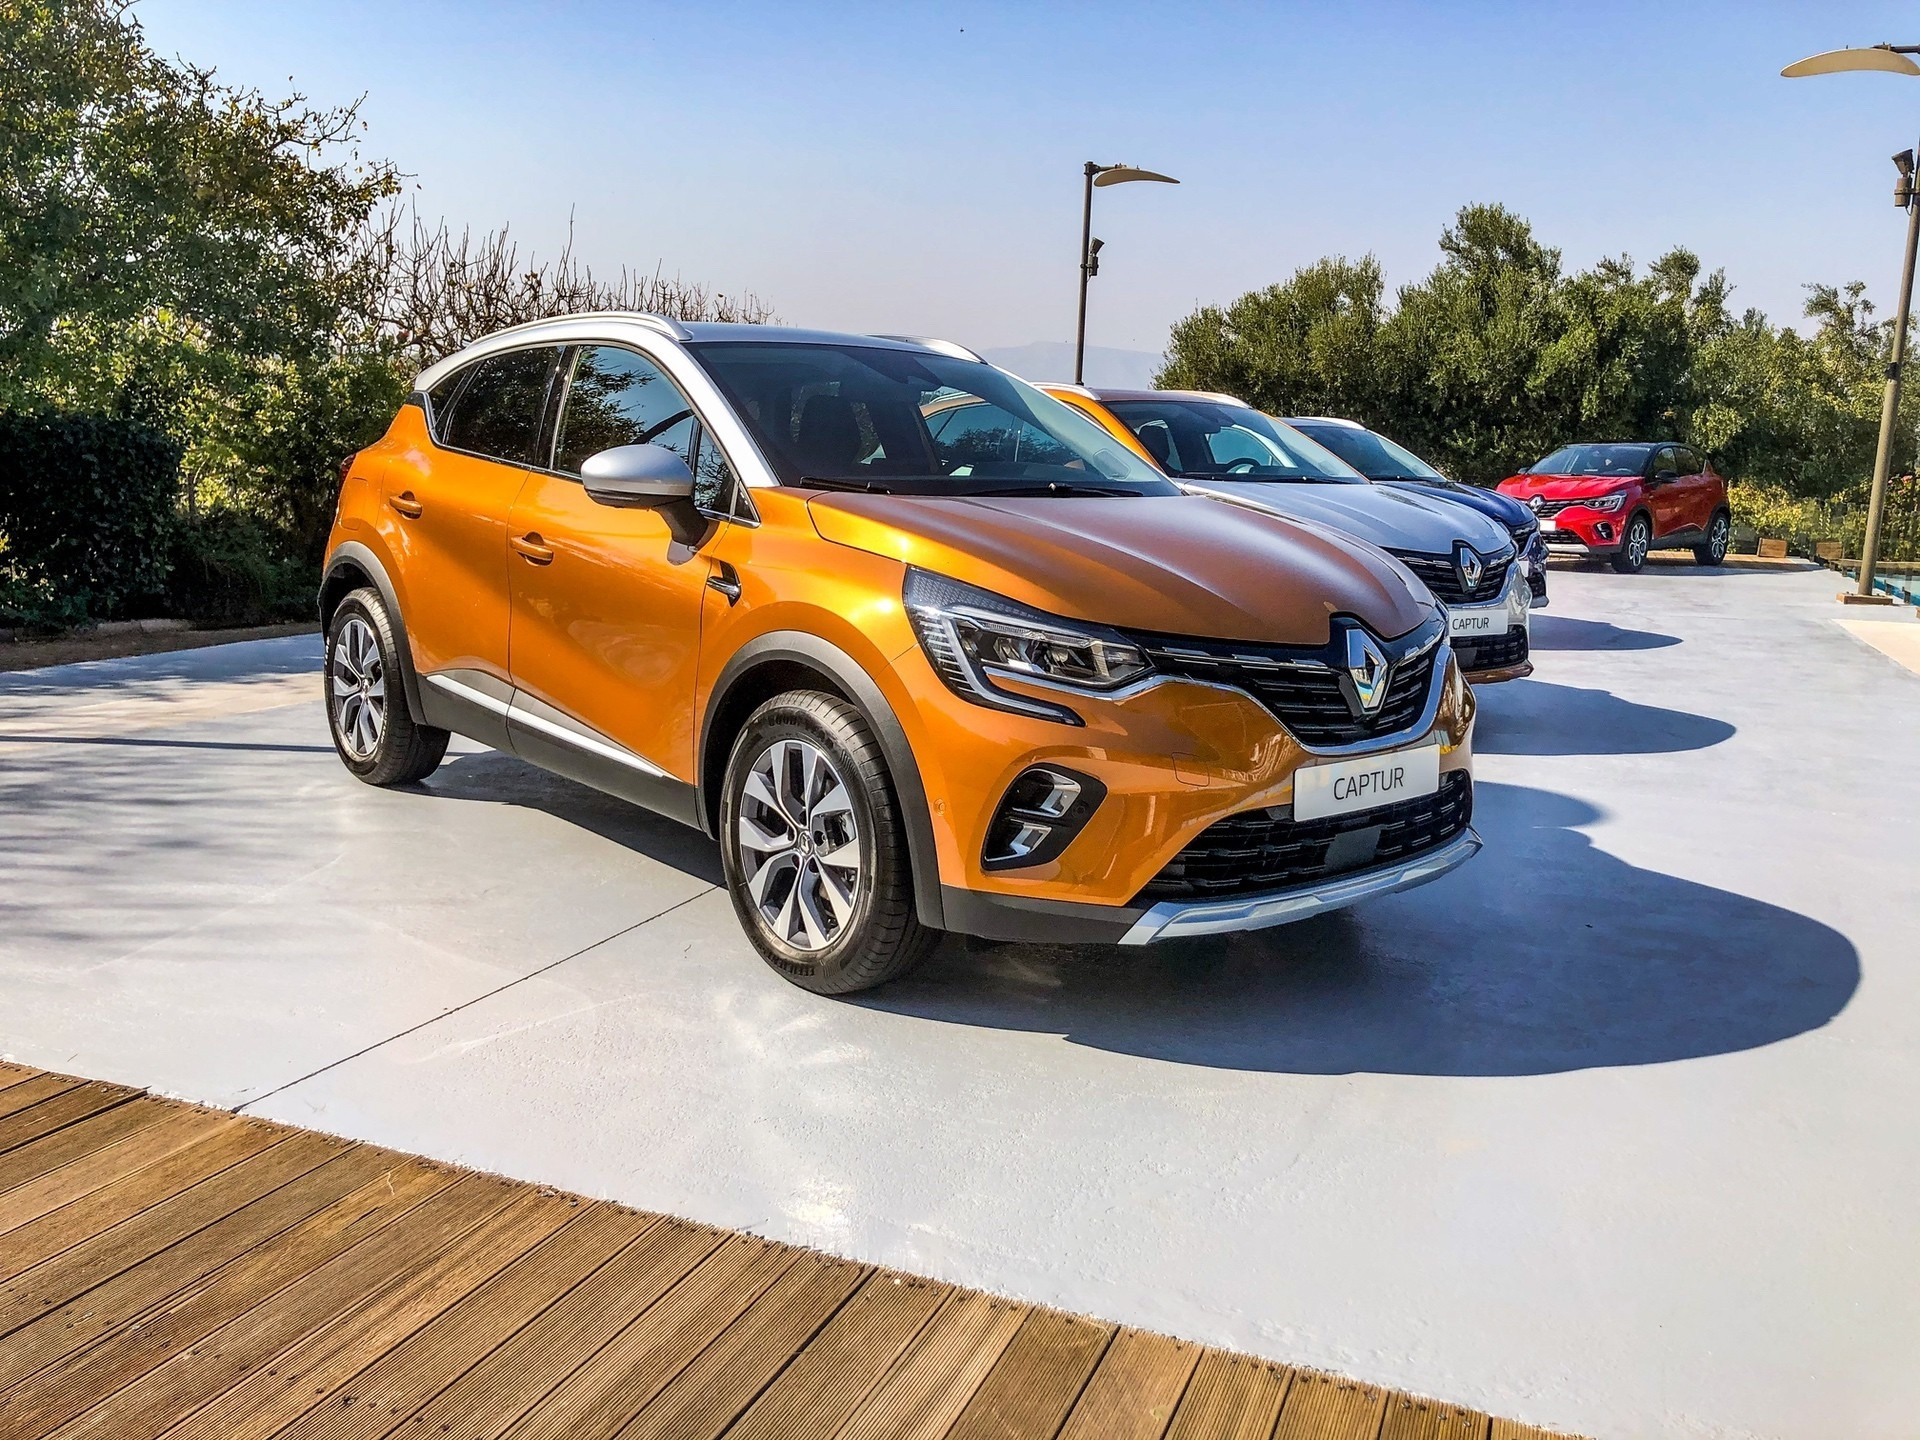 First_Drive_Renault_Captur_0001